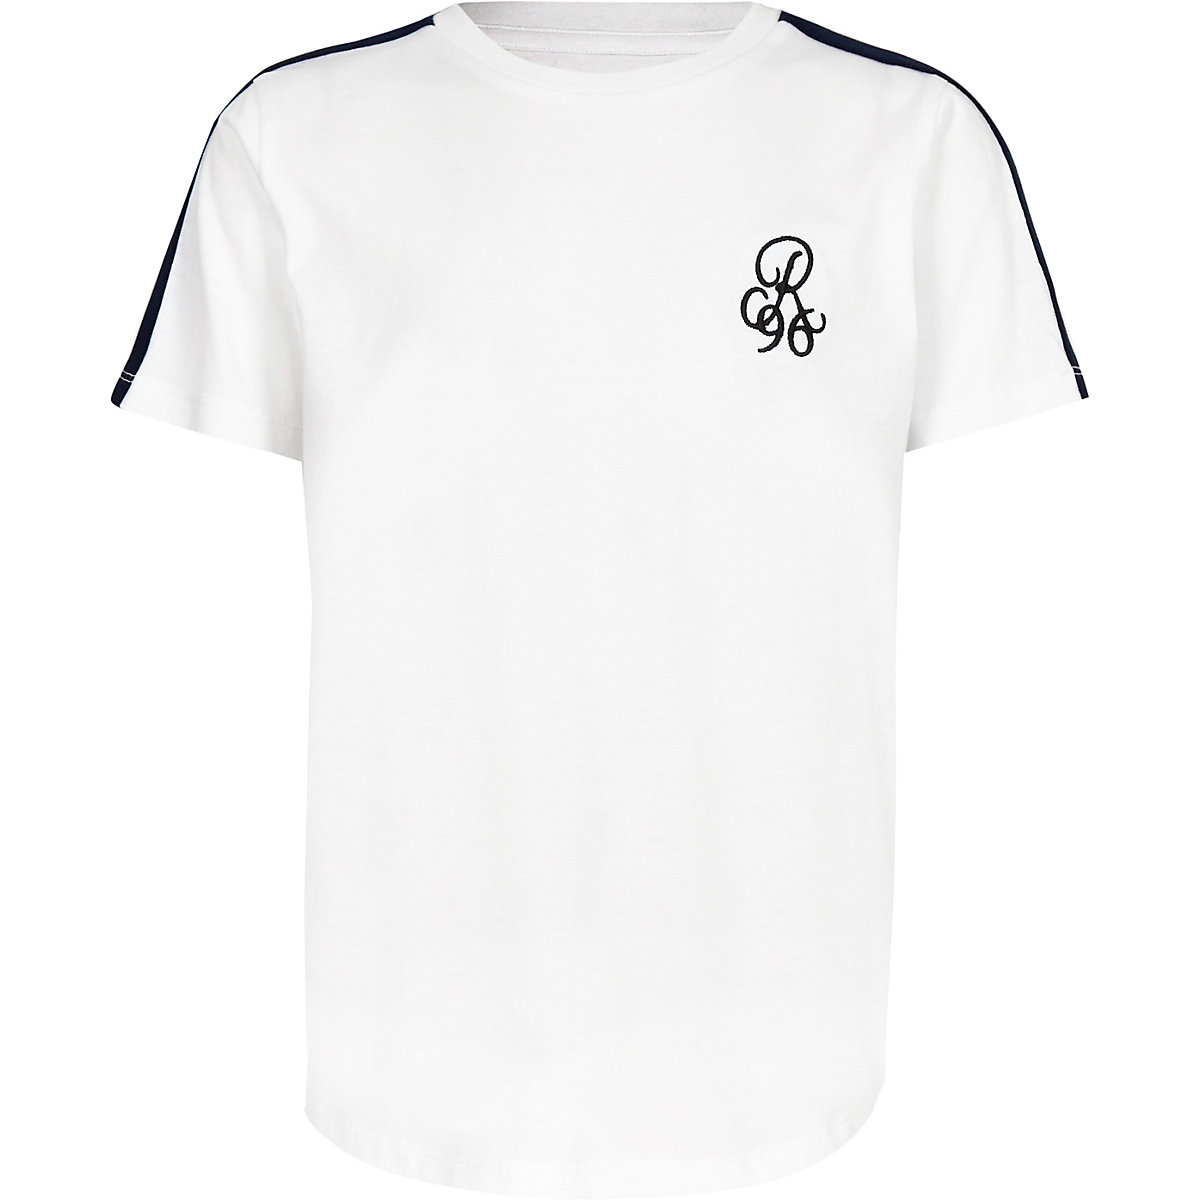 Boys white 'R96' tape sleeve T-shirt